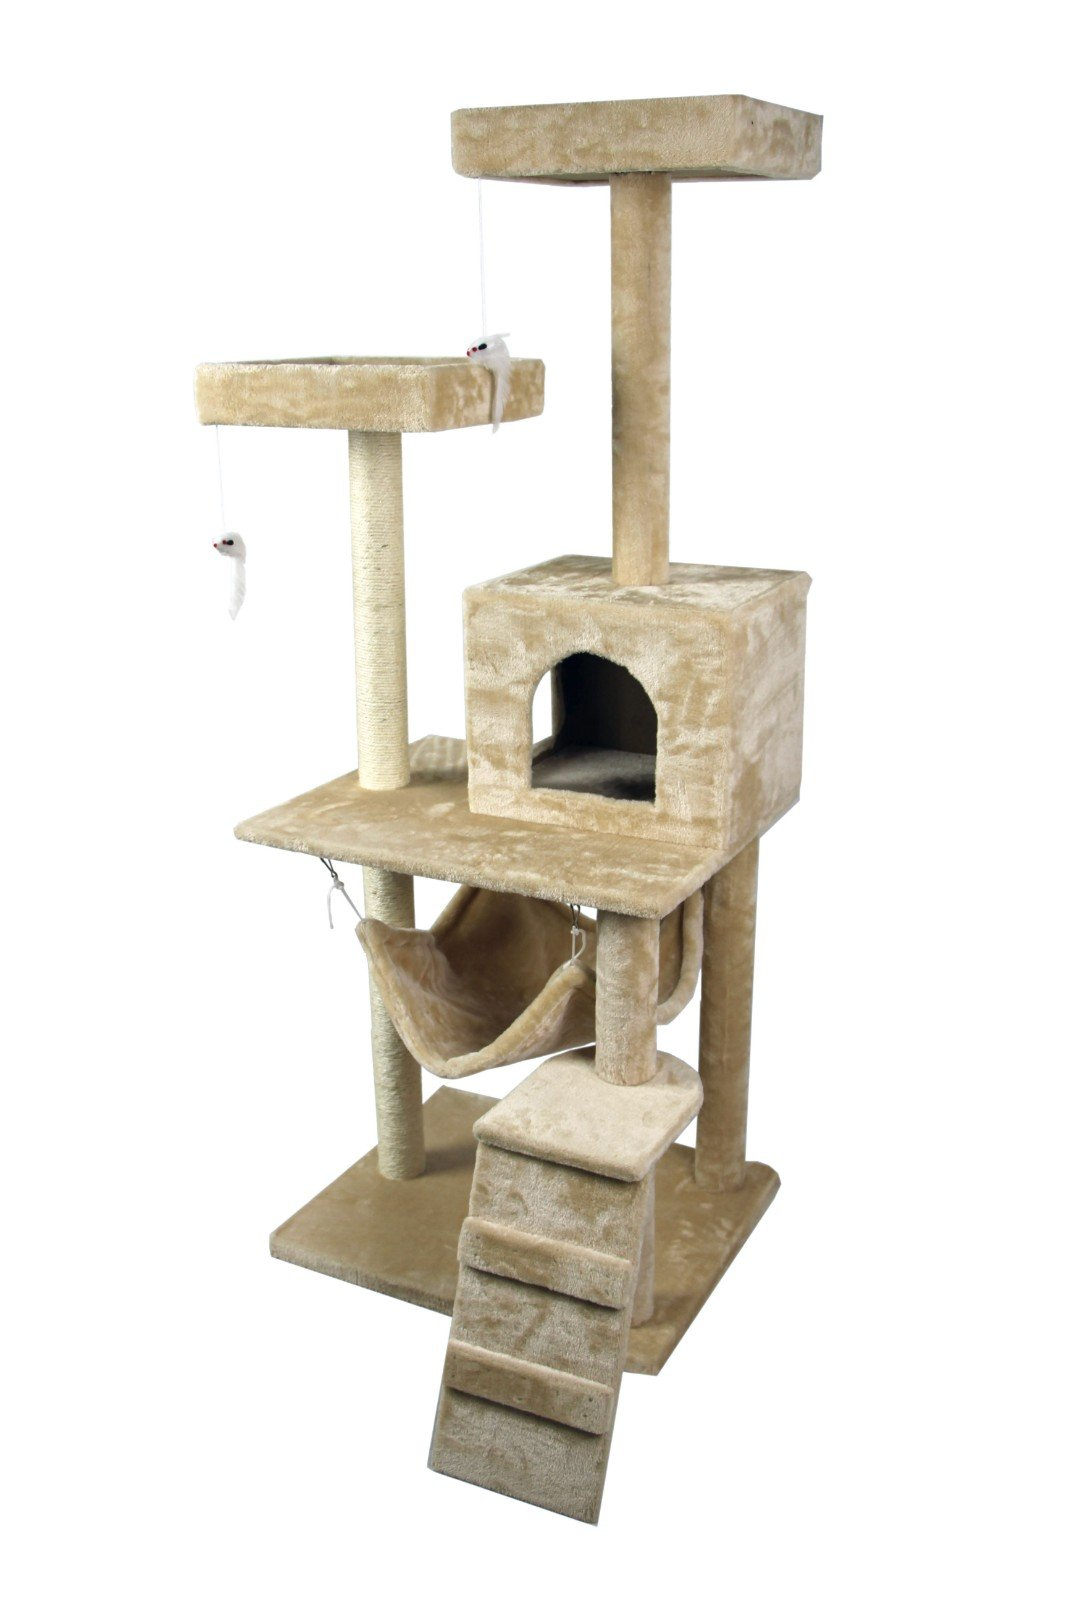 Hiding Nice Cat Tree Tower Condo Furniture Scratch Post Kitty Pet House Play Furniture Sisal Pole Stairs and Hammock, 29.92'' L, Beige by Hiding (Image #6)